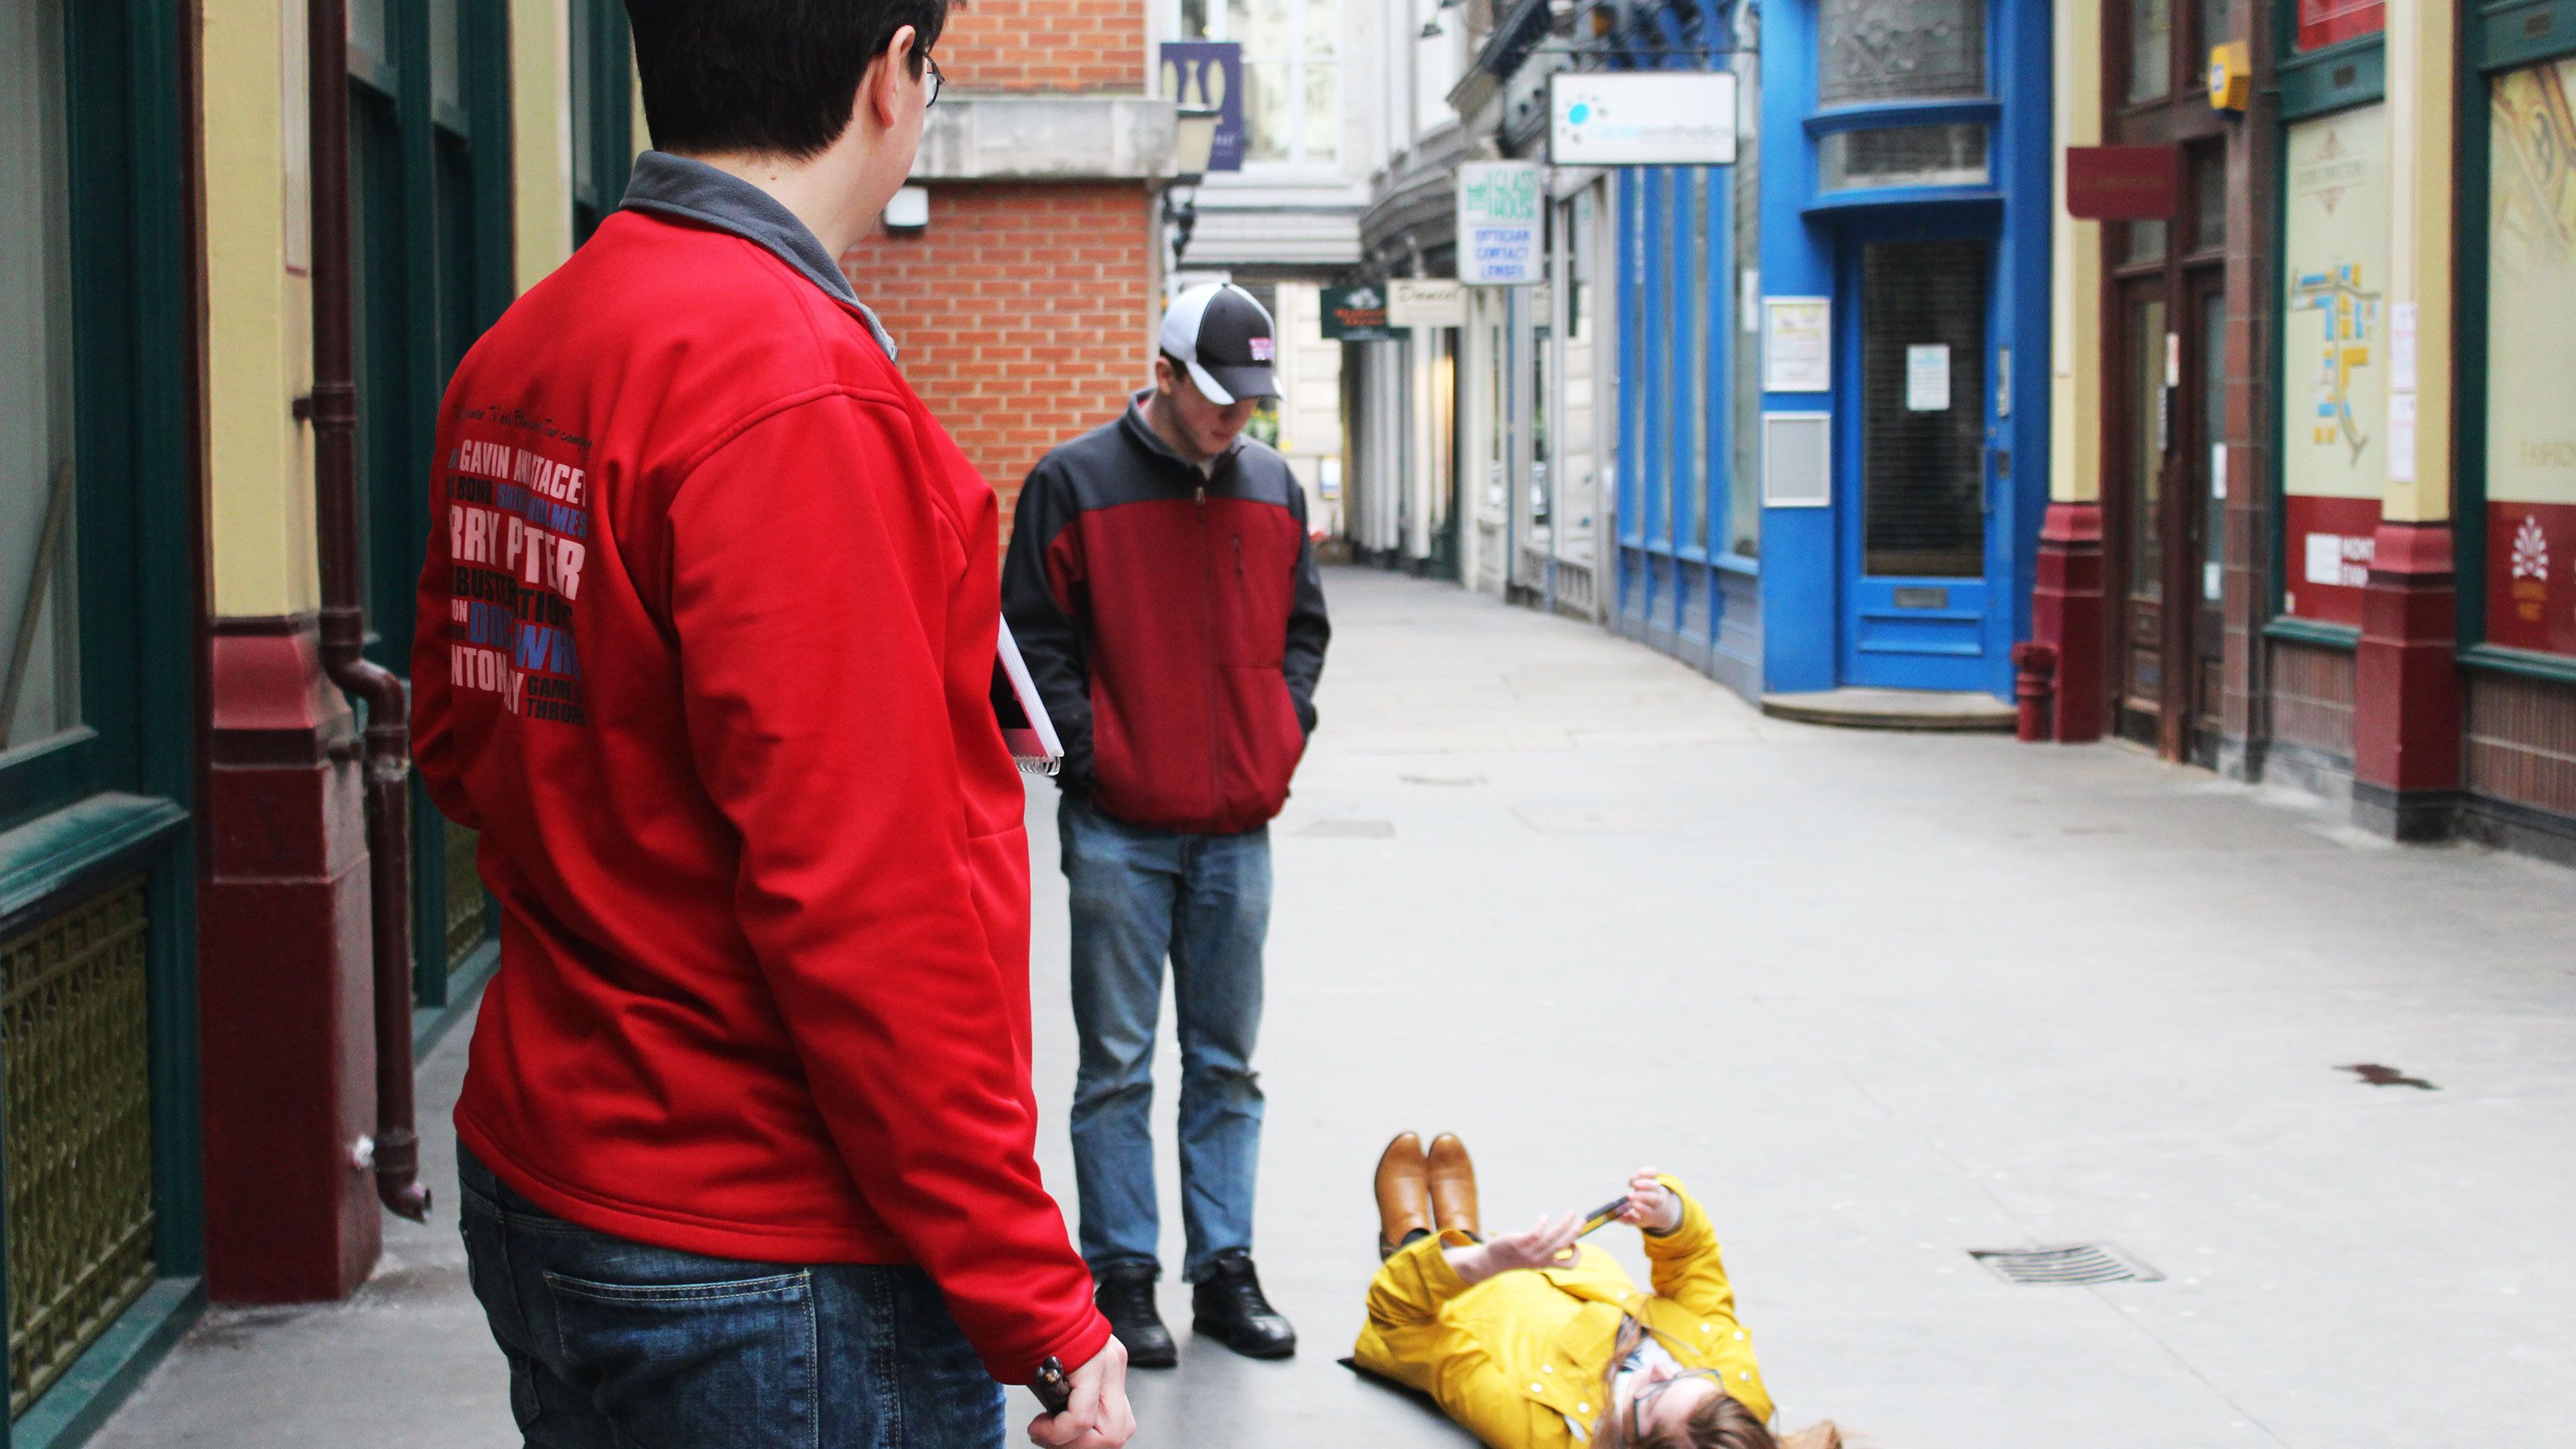 Tourist lying on ground, taking picture, while tour guide waits in London